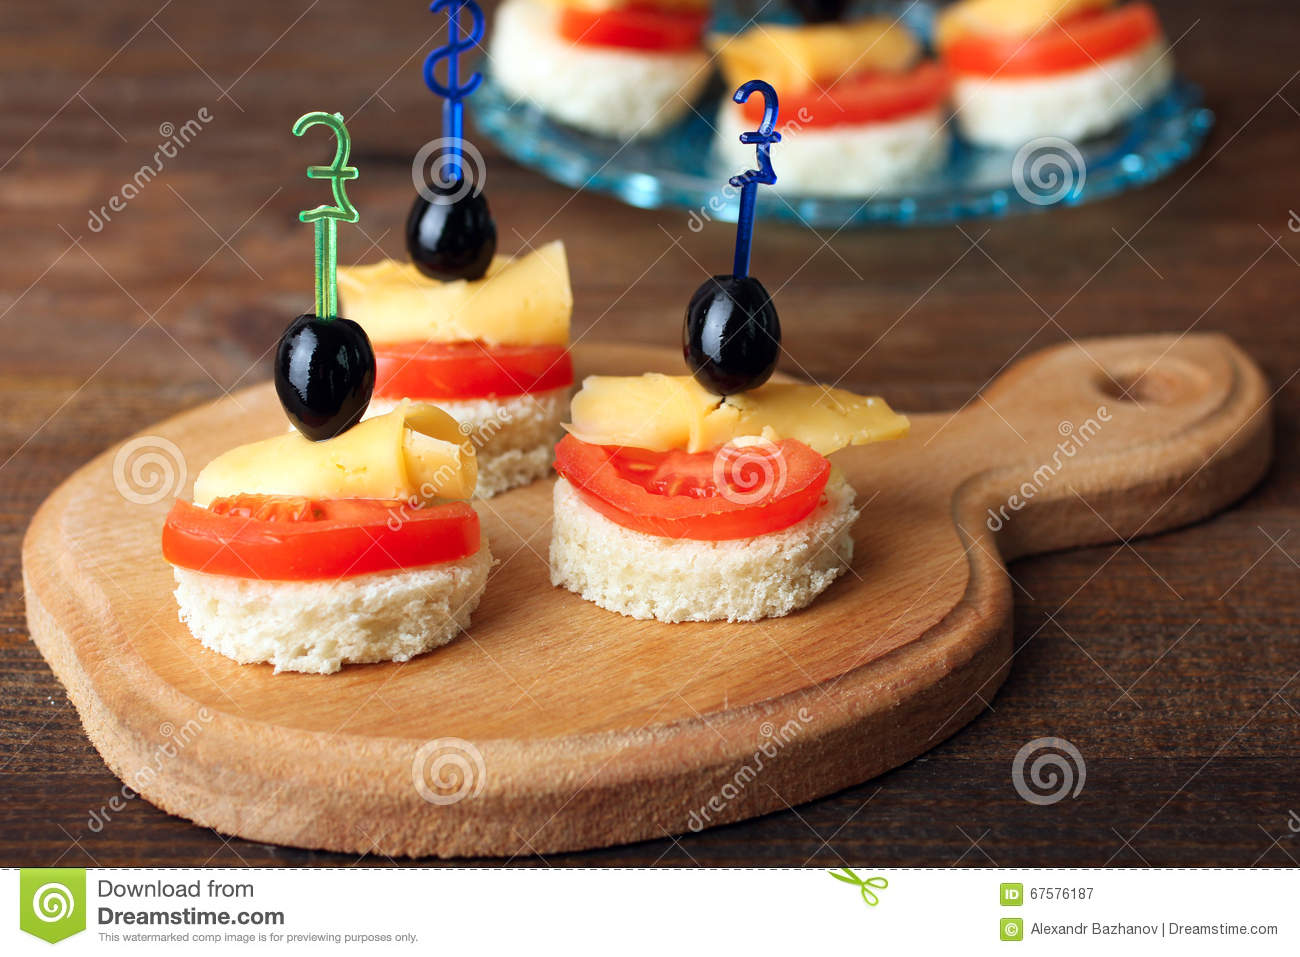 Canape 2016 Canape Stock Image Image Of Fresh Party Sandwich Canape 67576187